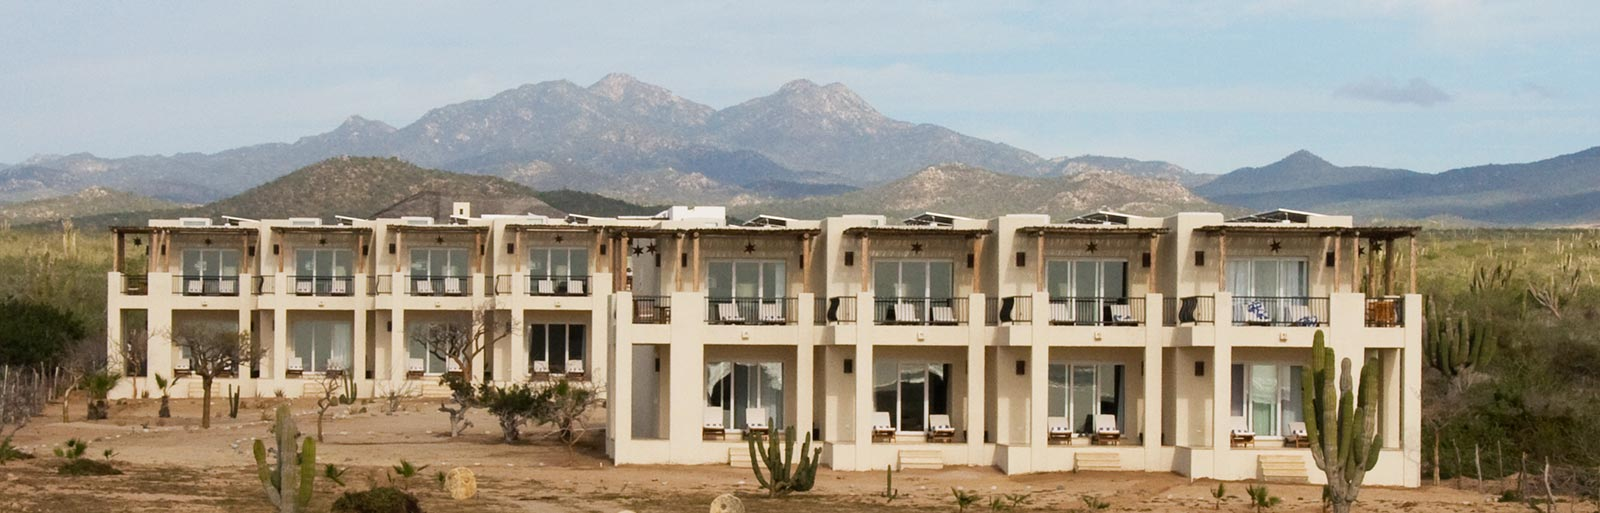 Mexico Yoga Retreat Center: Guest Rooms with Mountain Backdrop